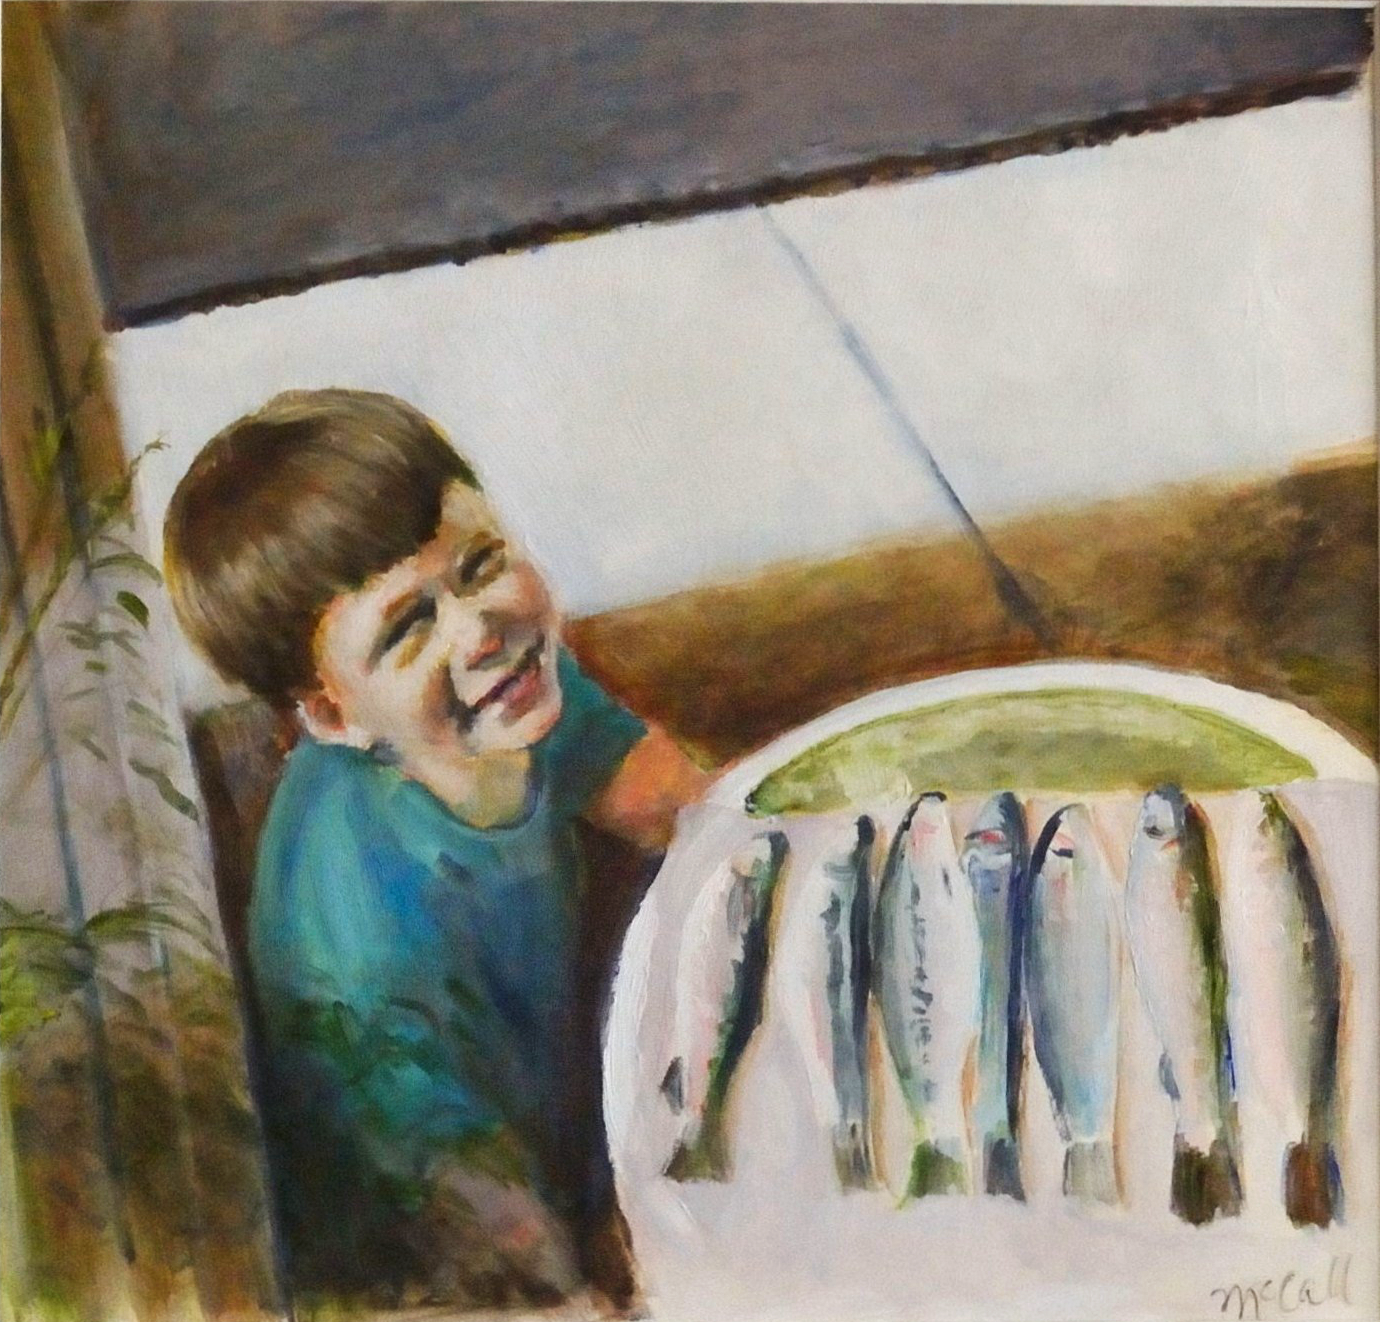 "Doug with     Trout    Oil on p  aper  12"" x11    1/2""  15""x14 1/2"" (framed)"